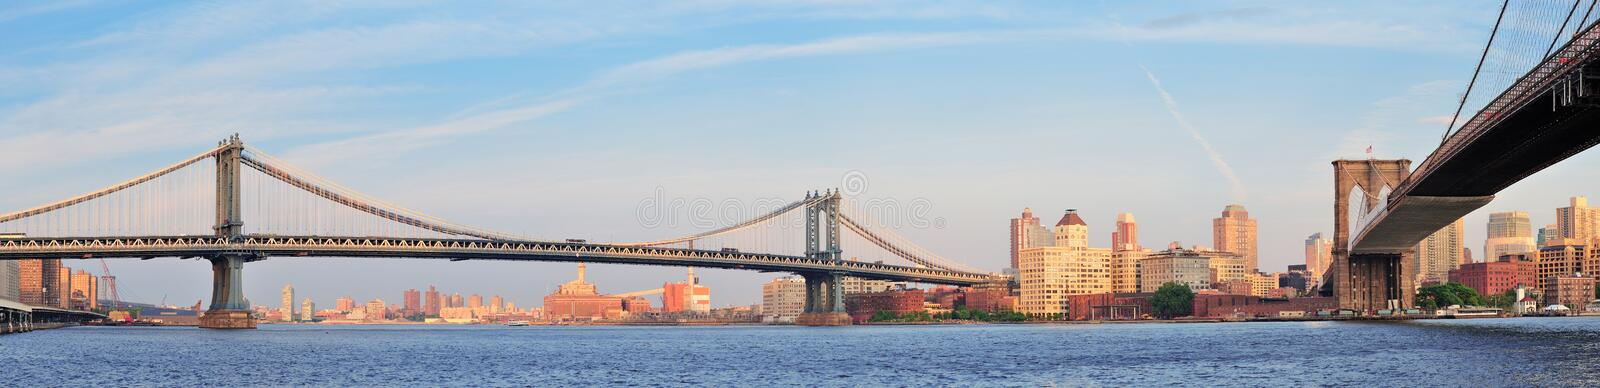 Pontes de New York City imagem de stock royalty free